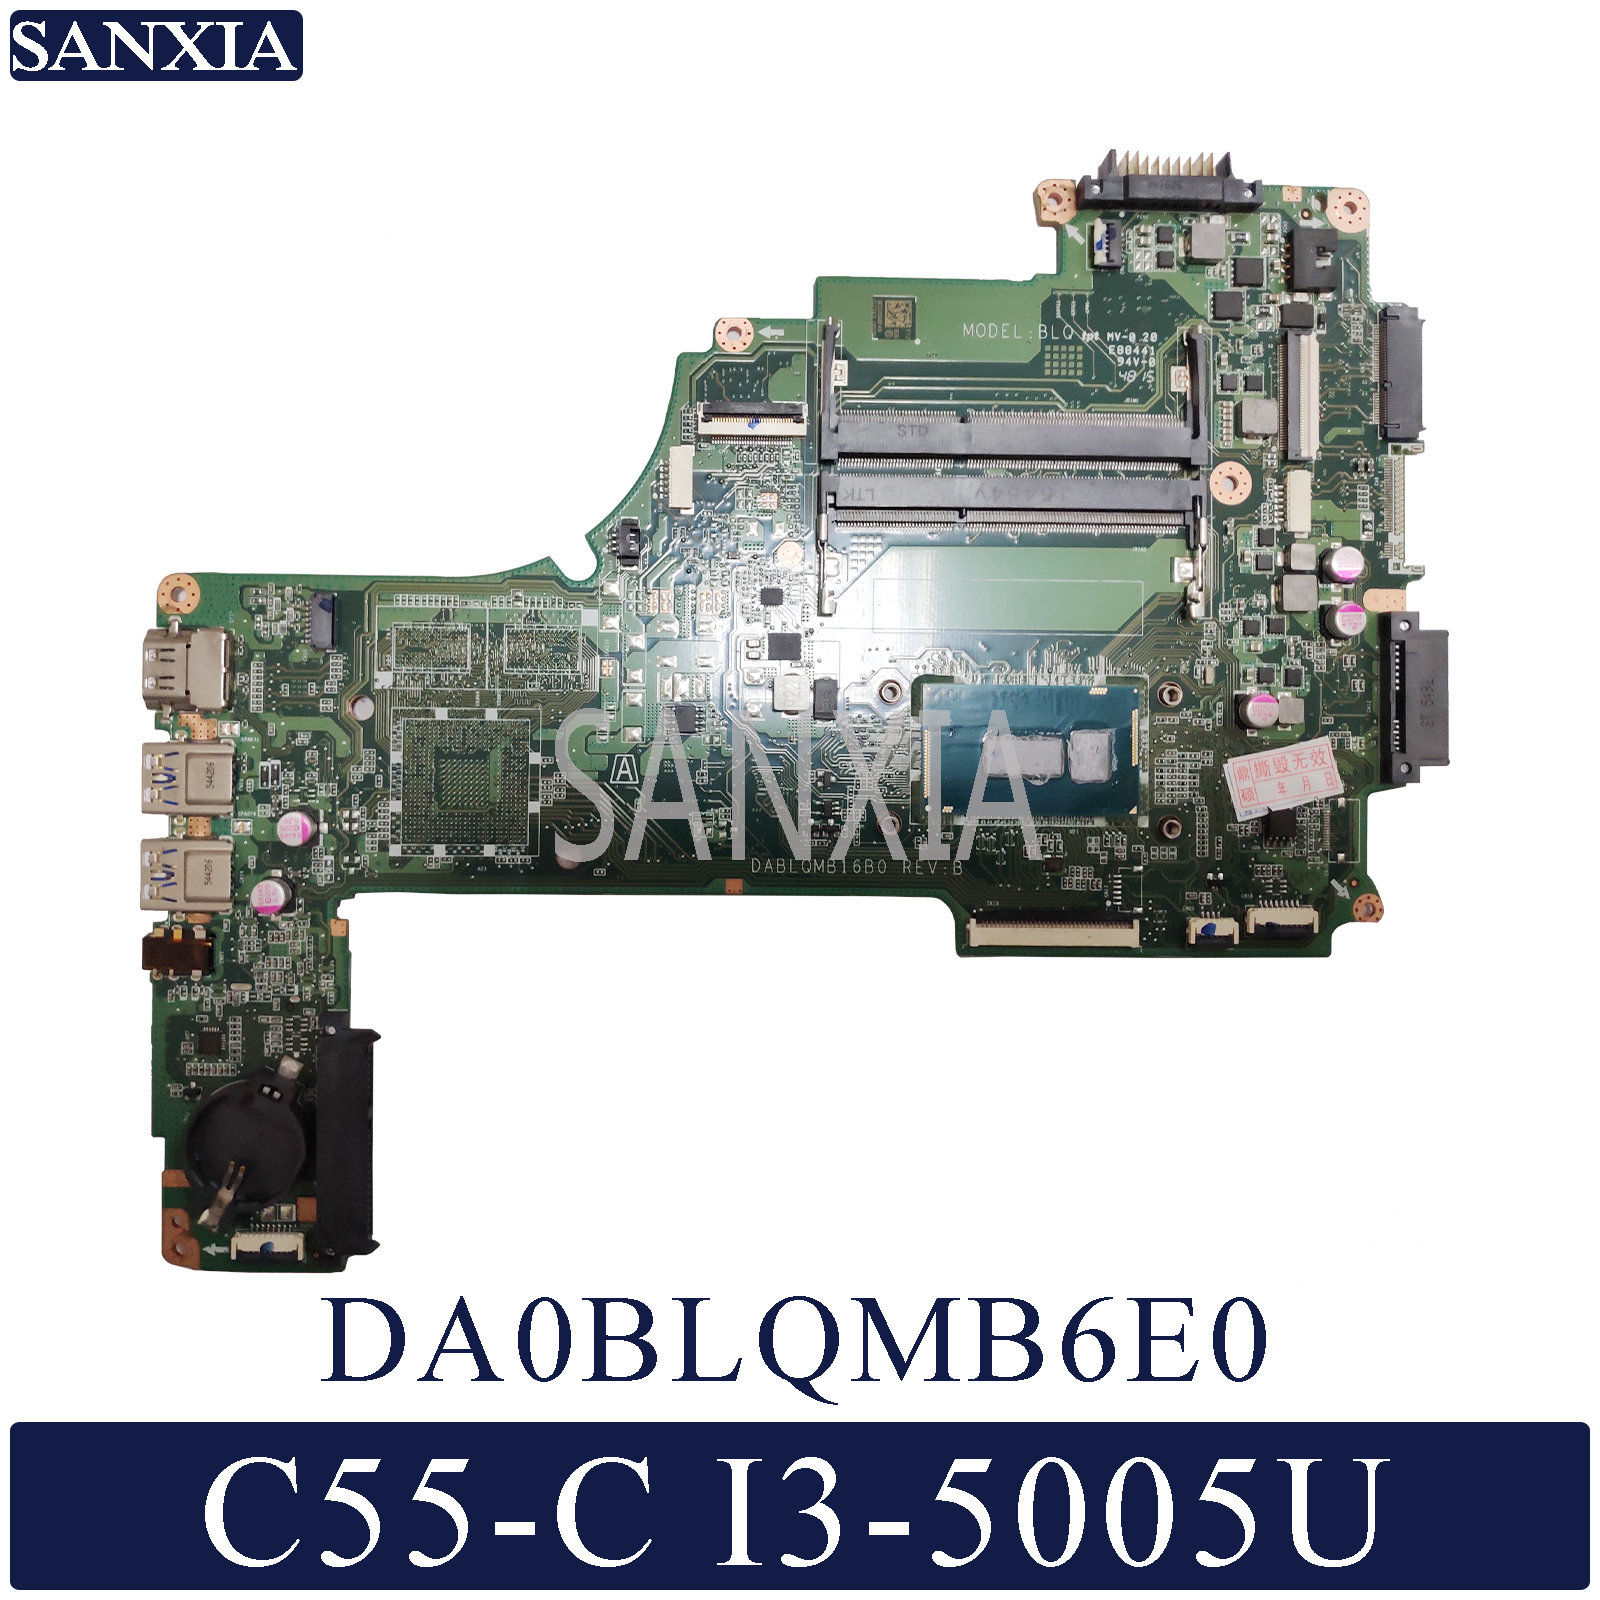 KEFU DA0BLQMB6E0 Laptop <font><b>motherboard</b></font> for <font><b>Toshiba</b></font> <font><b>Satellite</b></font> <font><b>C55</b></font>-C original mainboard I3-5005U image